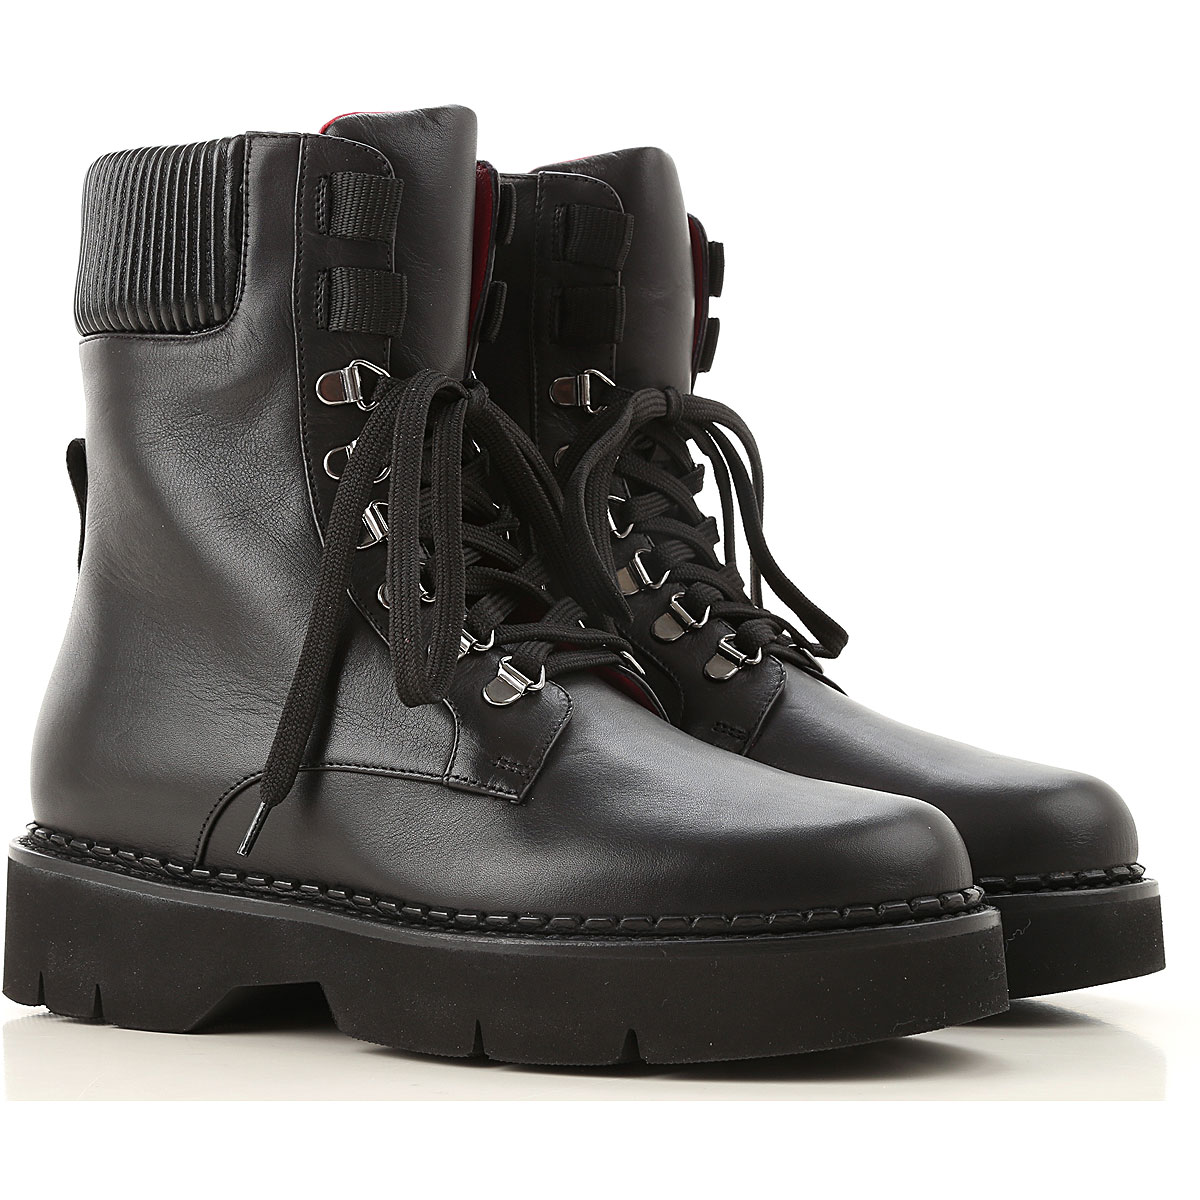 181 Boots for Women, Booties, Black, Leather, 2019, 5 9 9 9 9